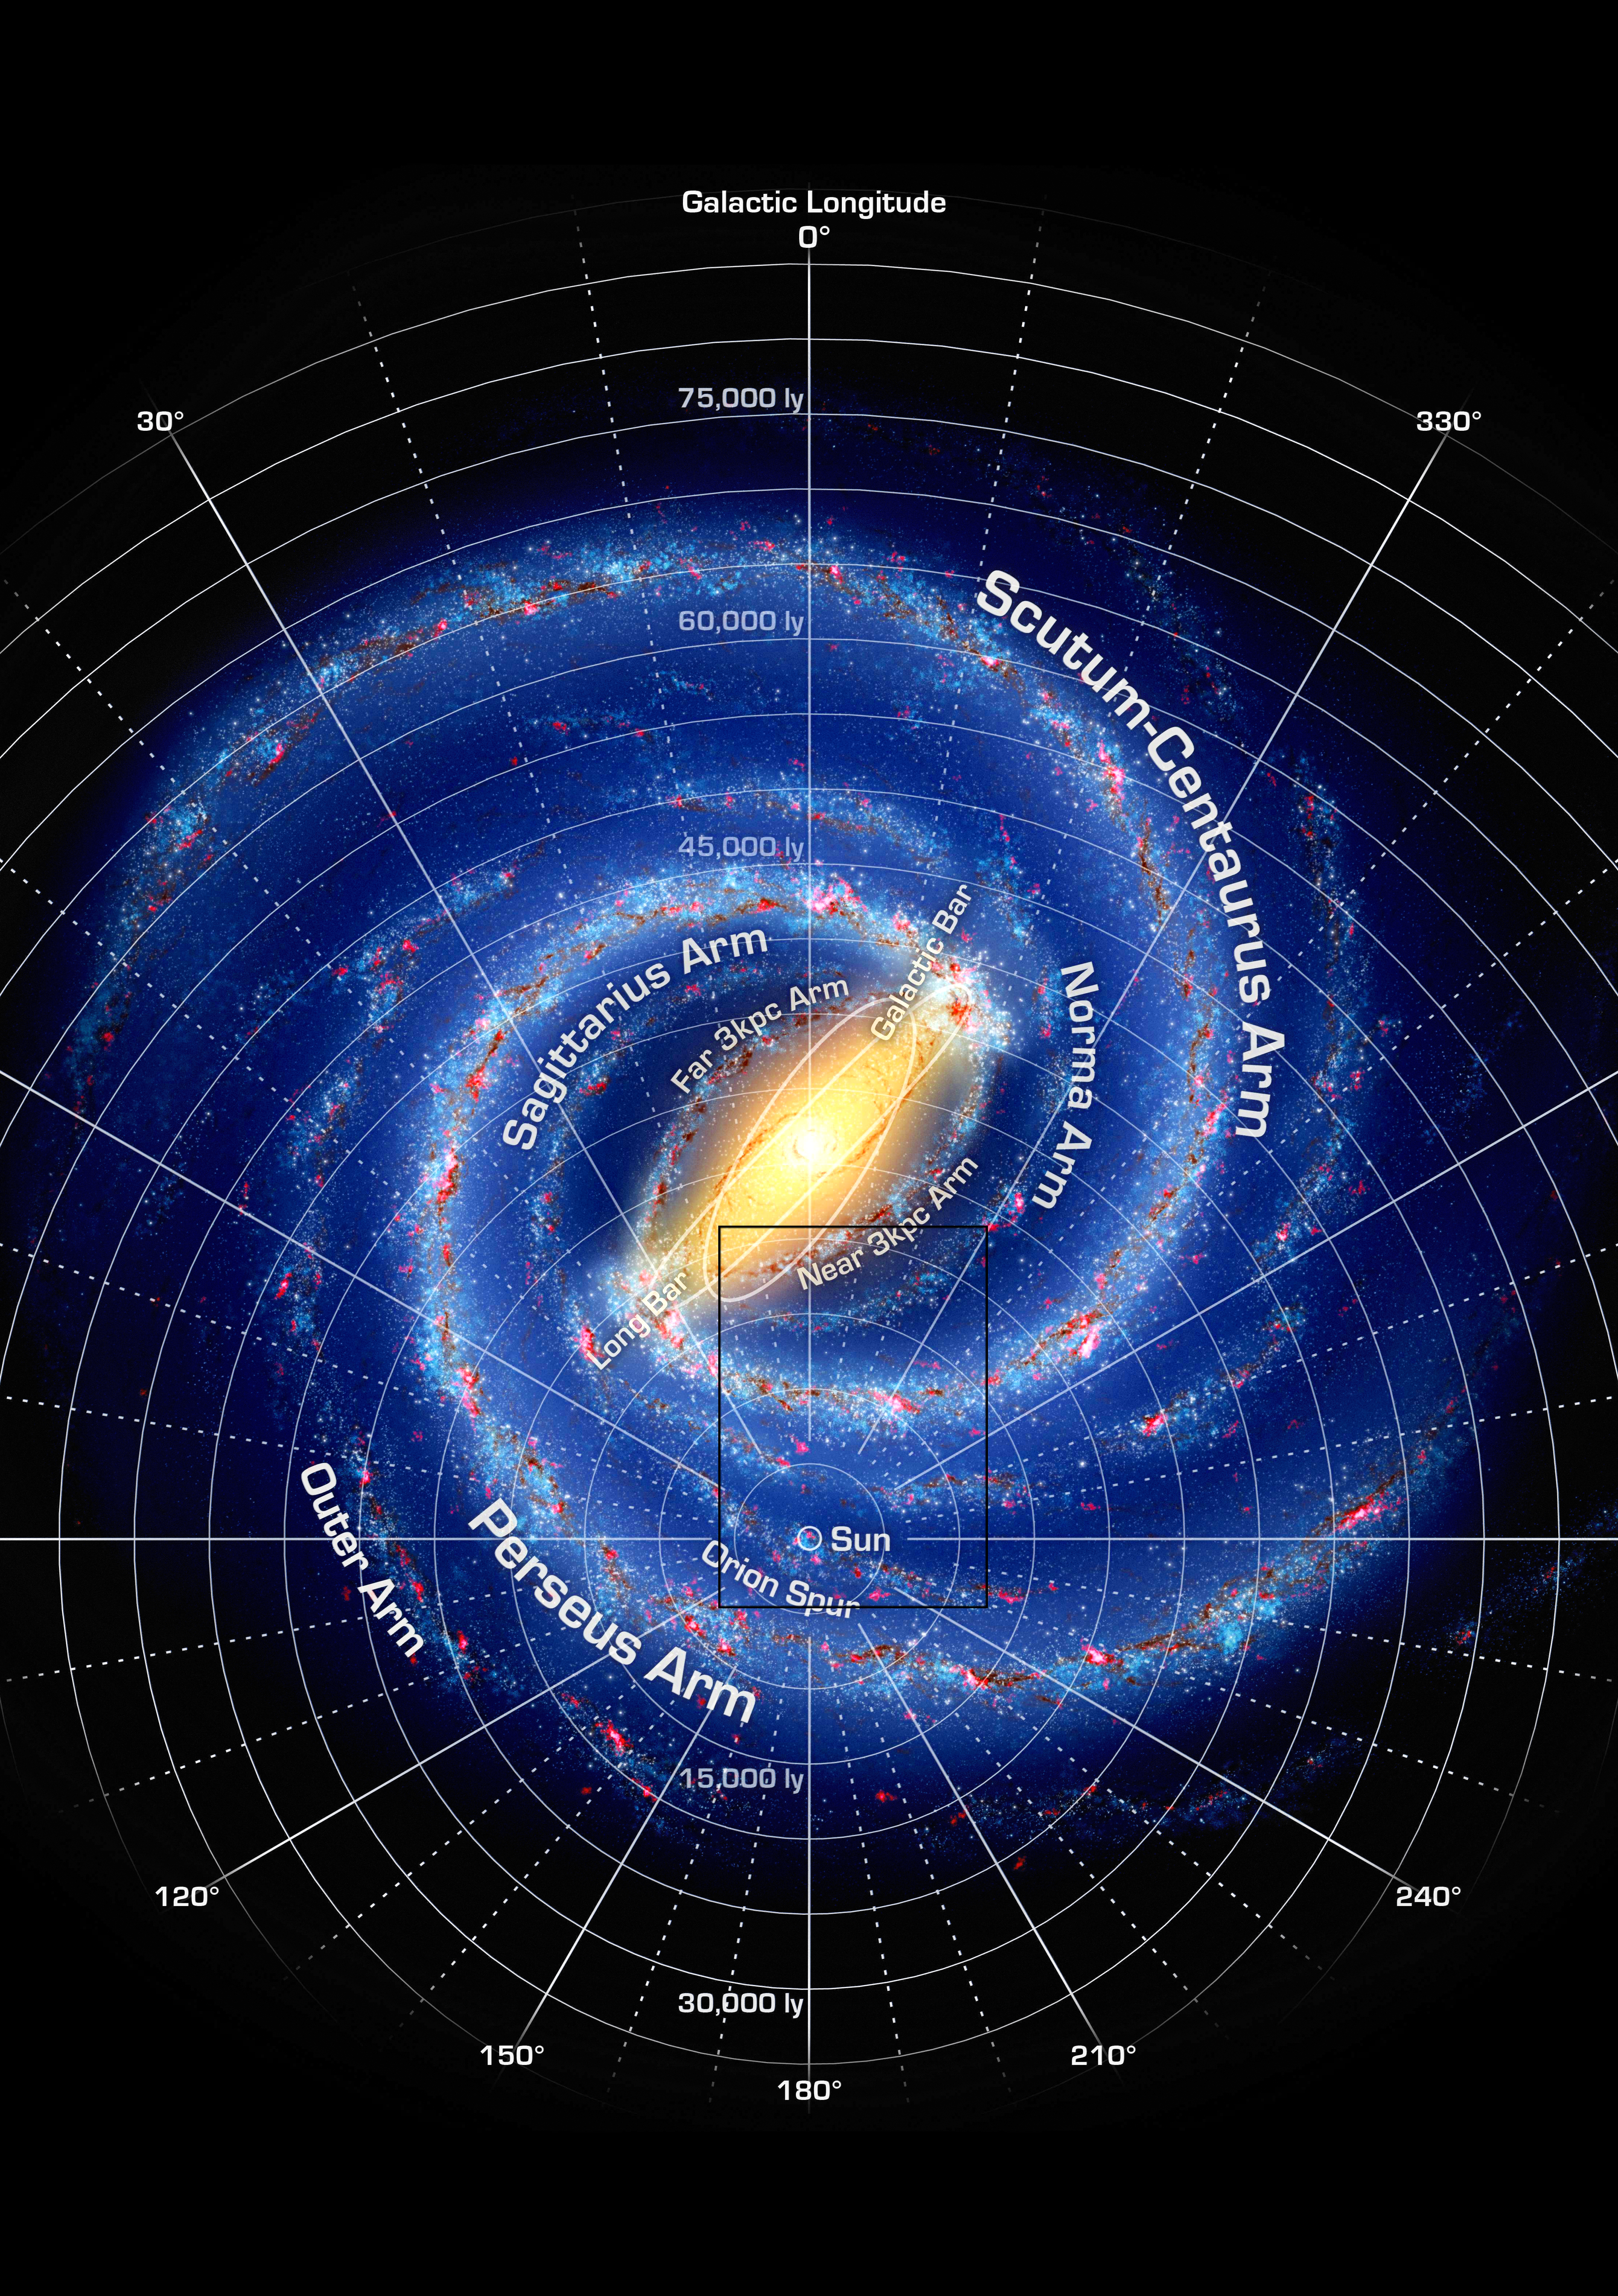 Map Of Milky Way File:Milky Way Map A5 zoominfo 2.png   Wikimedia Commons Map Of Milky Way